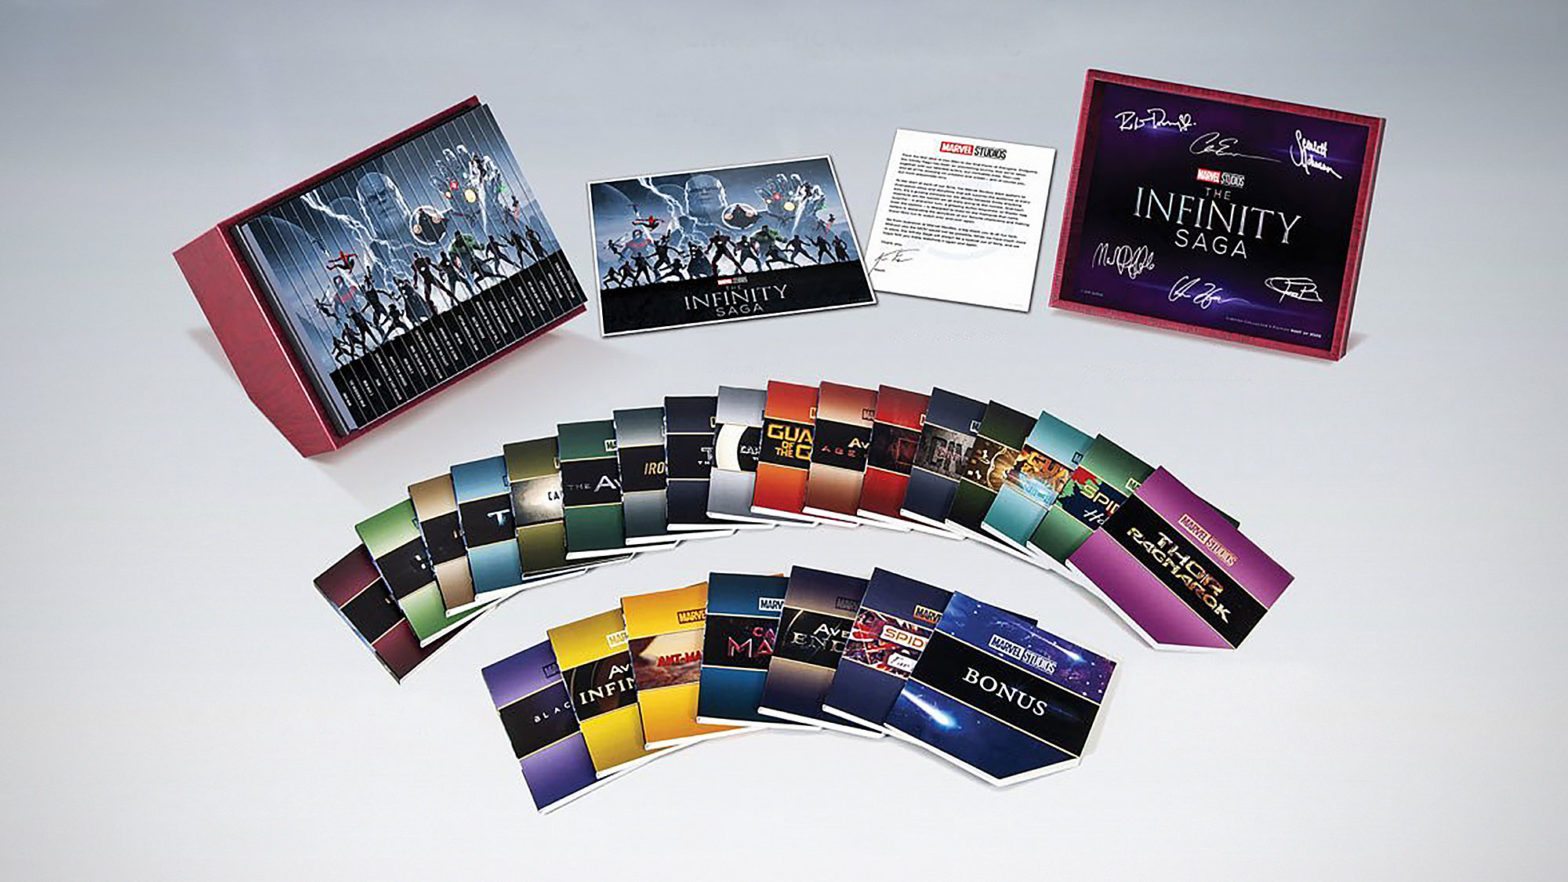 The Infinity Saga Collector's Edition Blu-ray